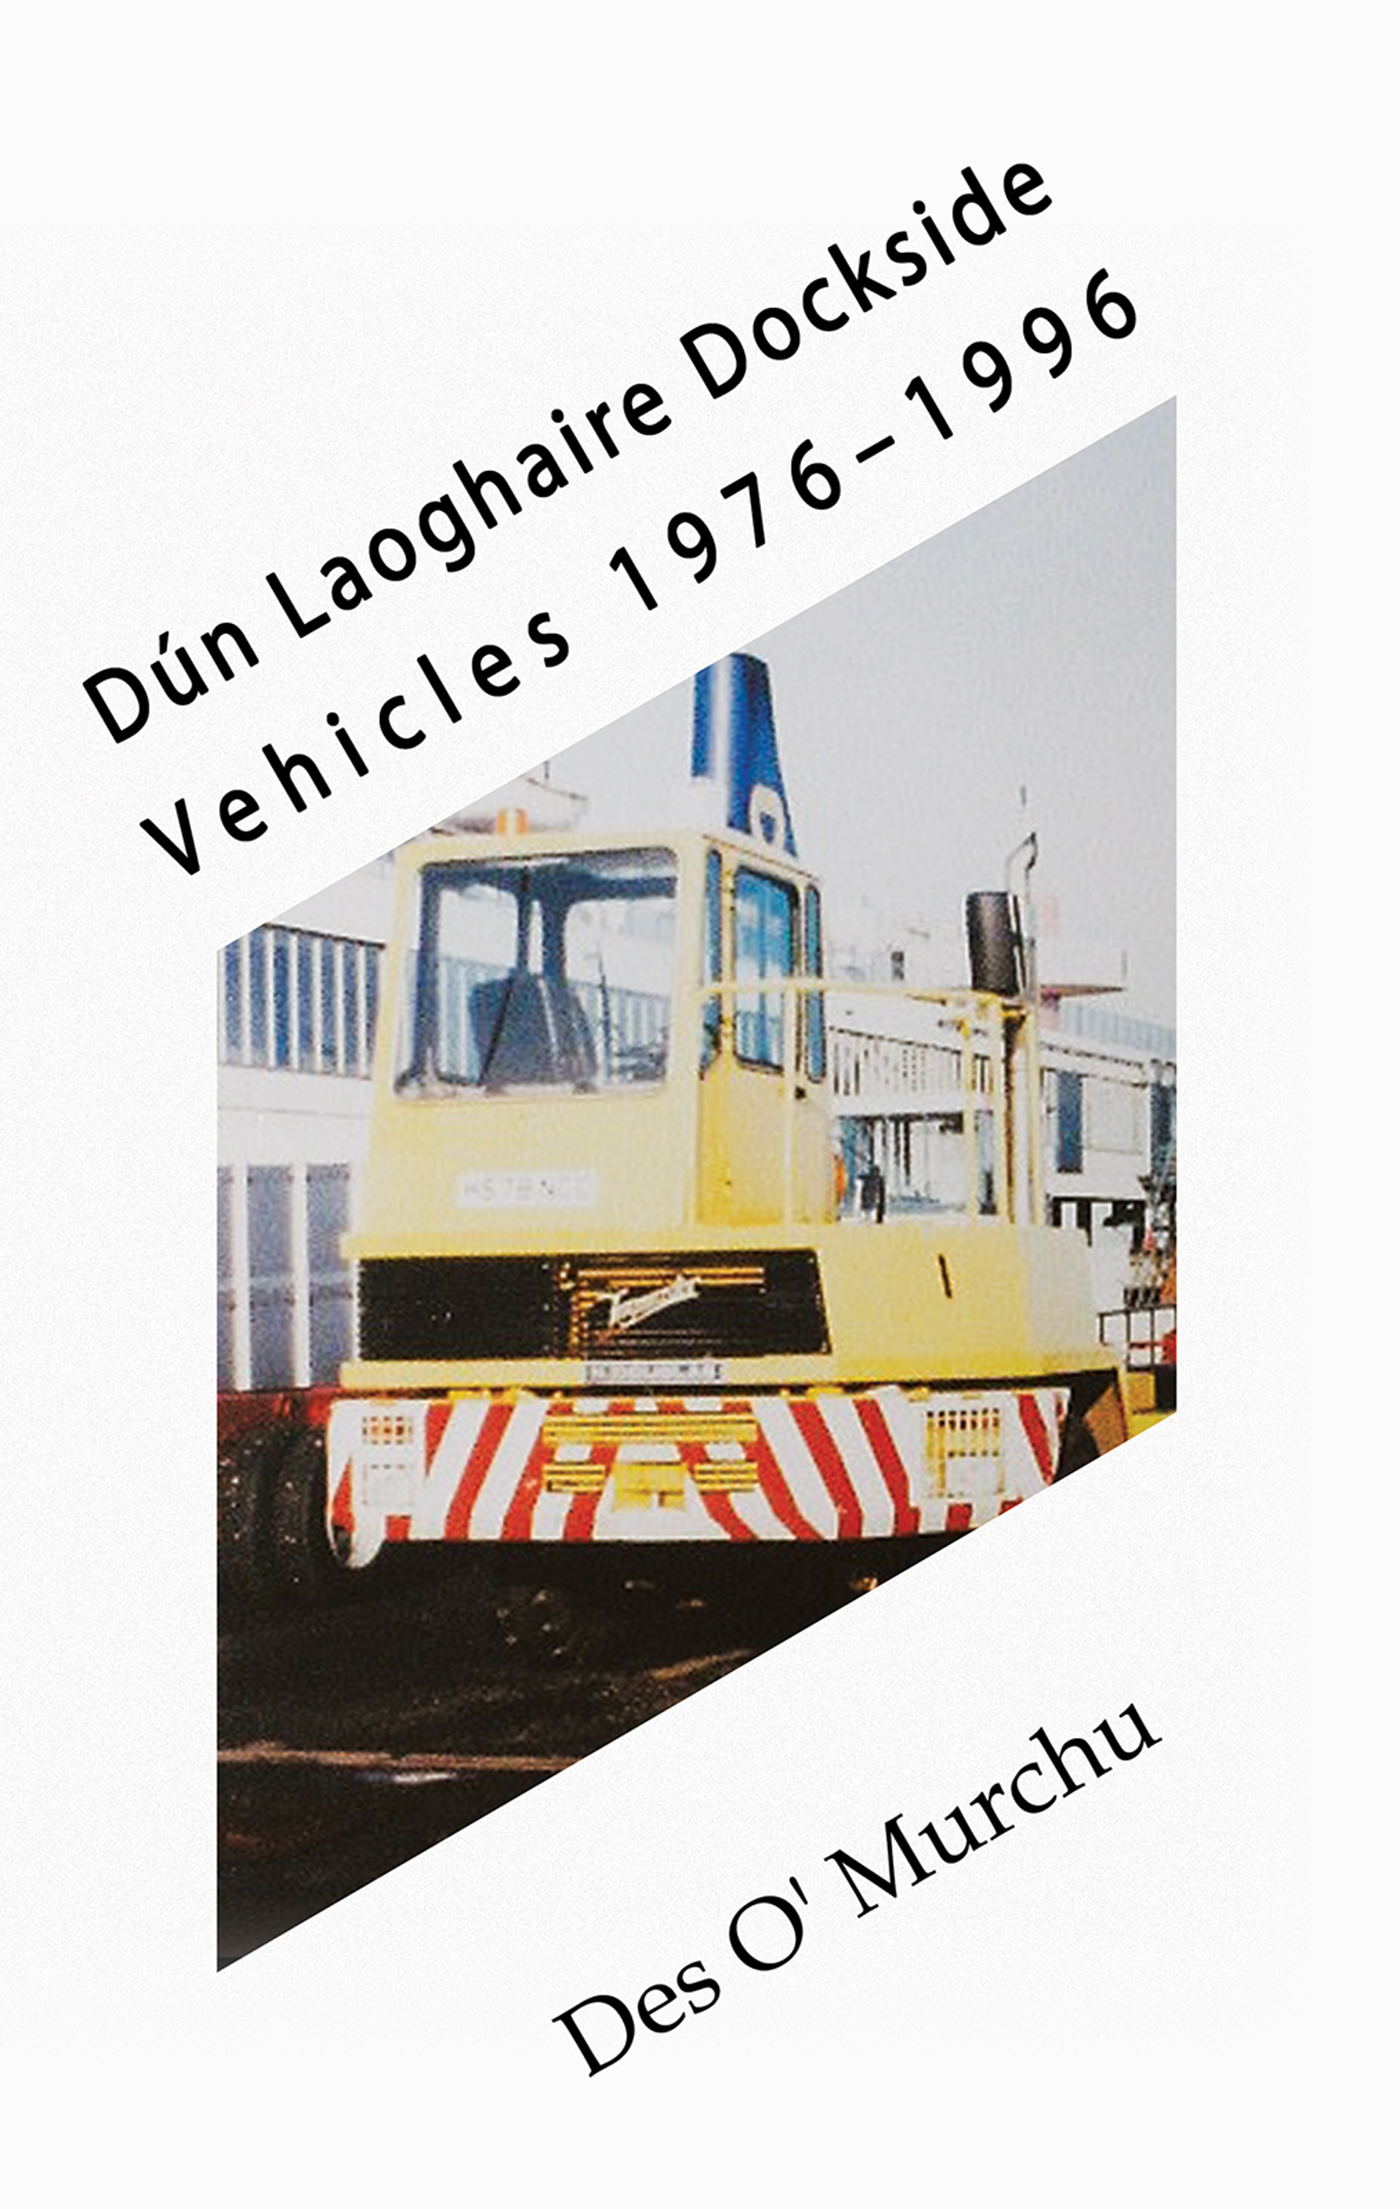 Dún Laoghaire Dockside Vehicles 1976–1996